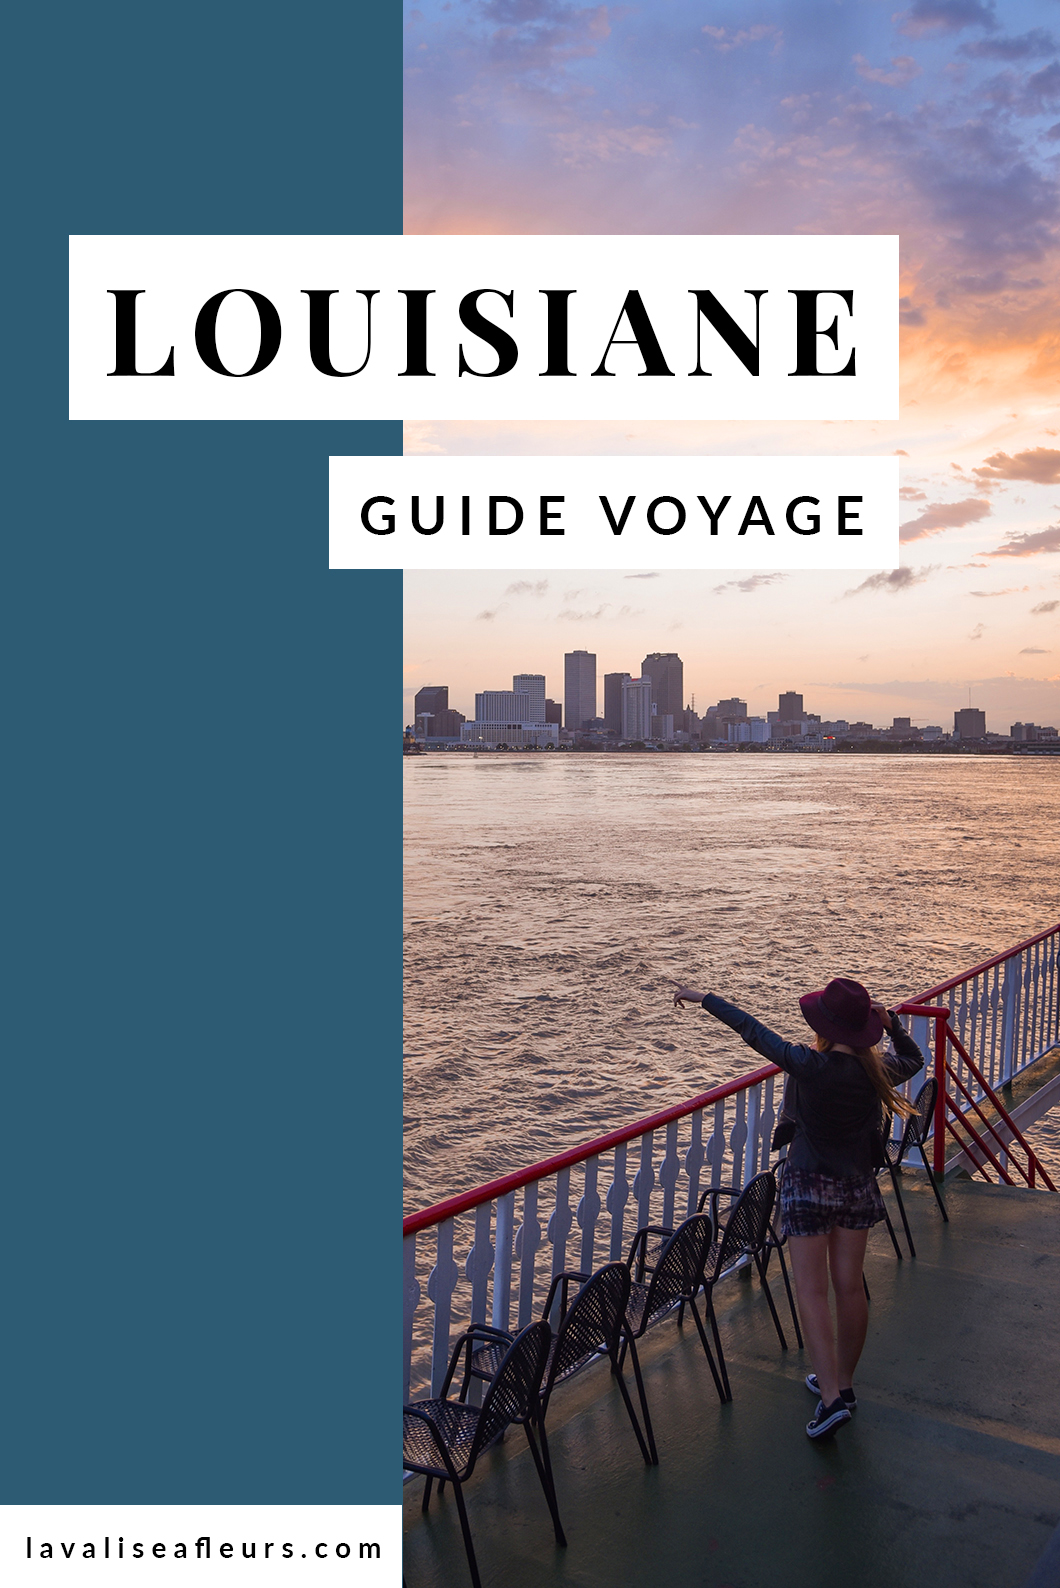 Guide Voyage en Louisiane